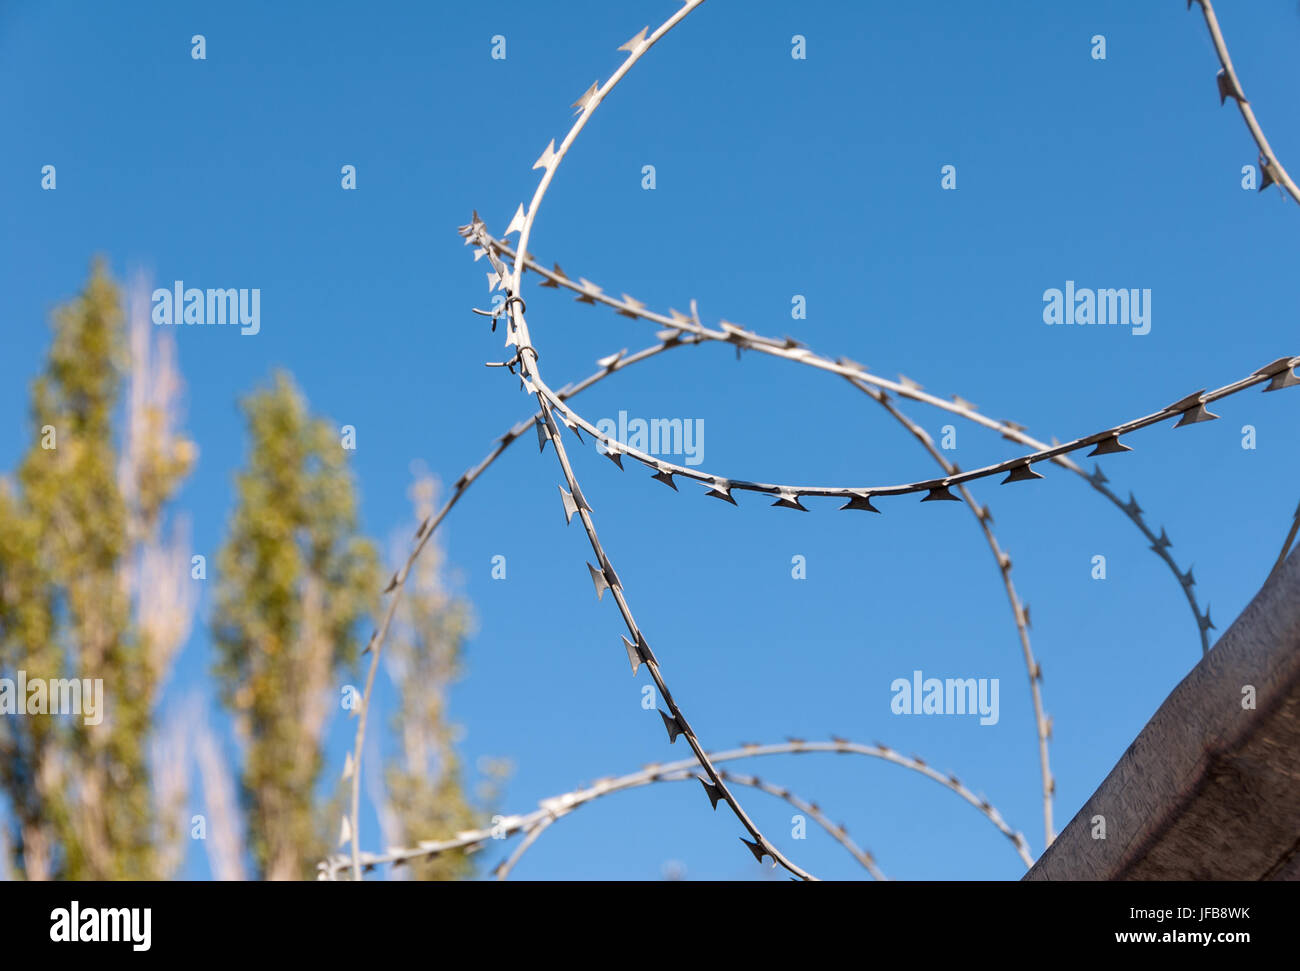 Barbed wire against the blue sky - Stock Image